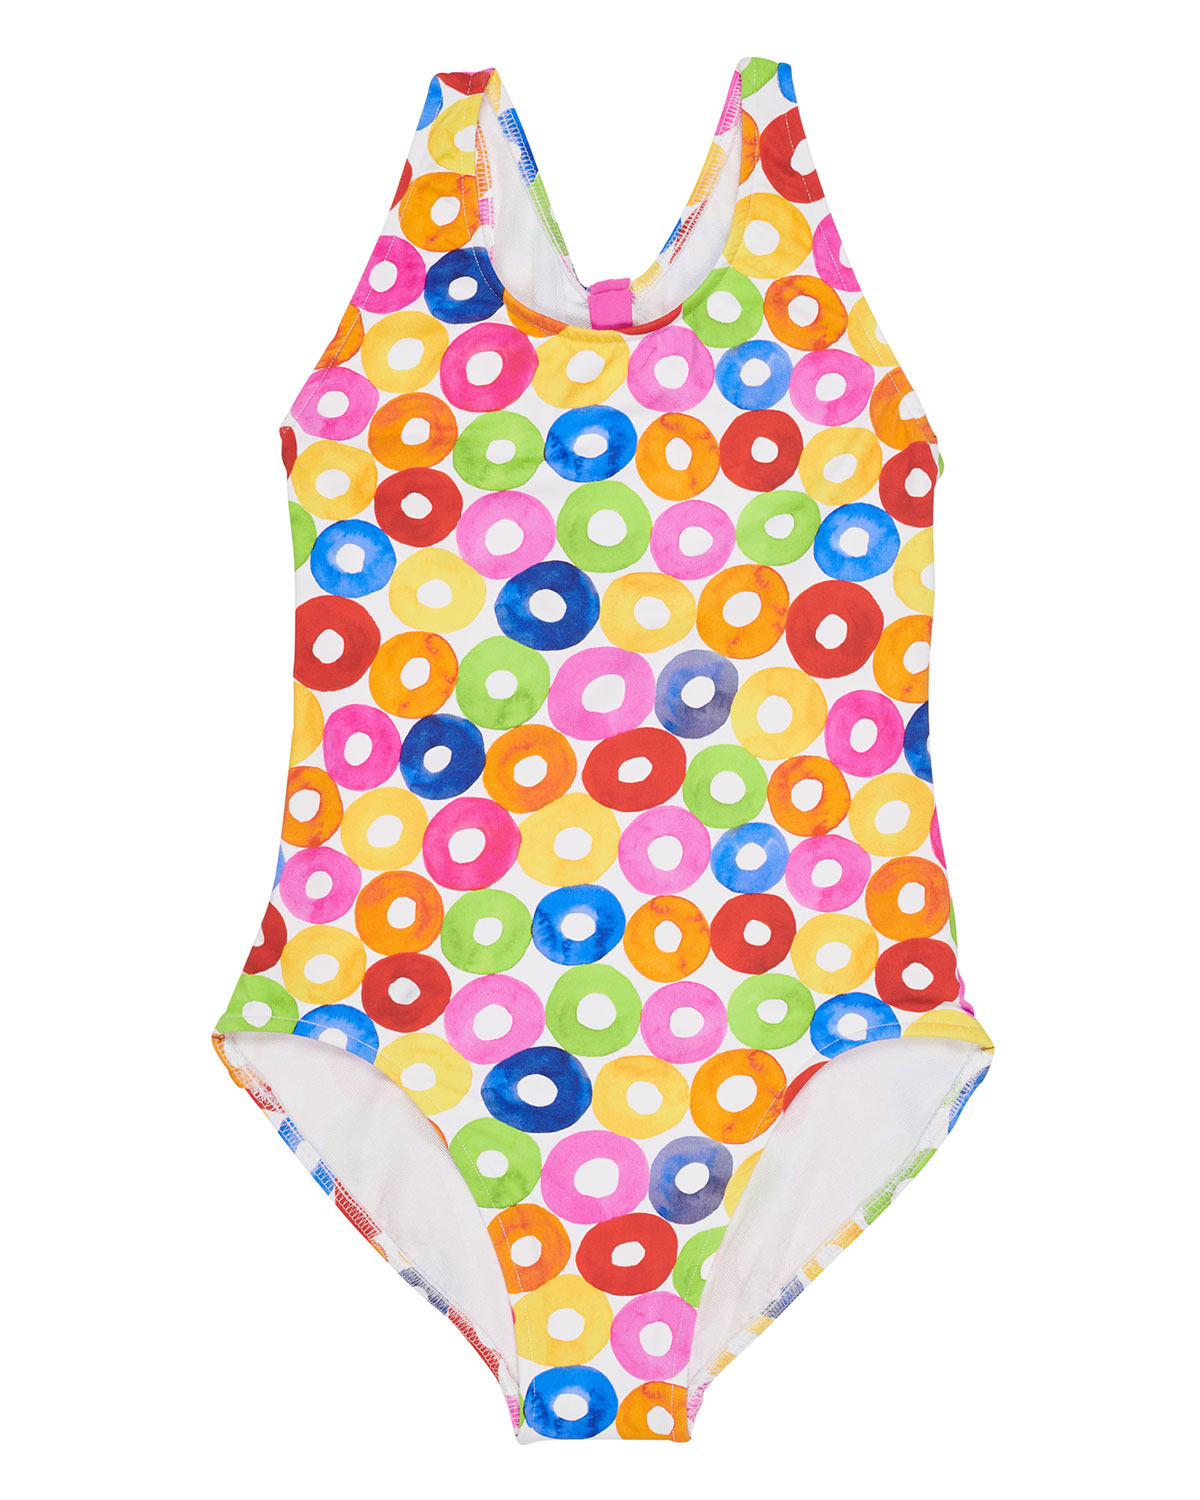 FLORENCE EISEMAN Multicolored Lifesaver-Print Cutout Back One-Piece Swimsuit, Size 5-6X